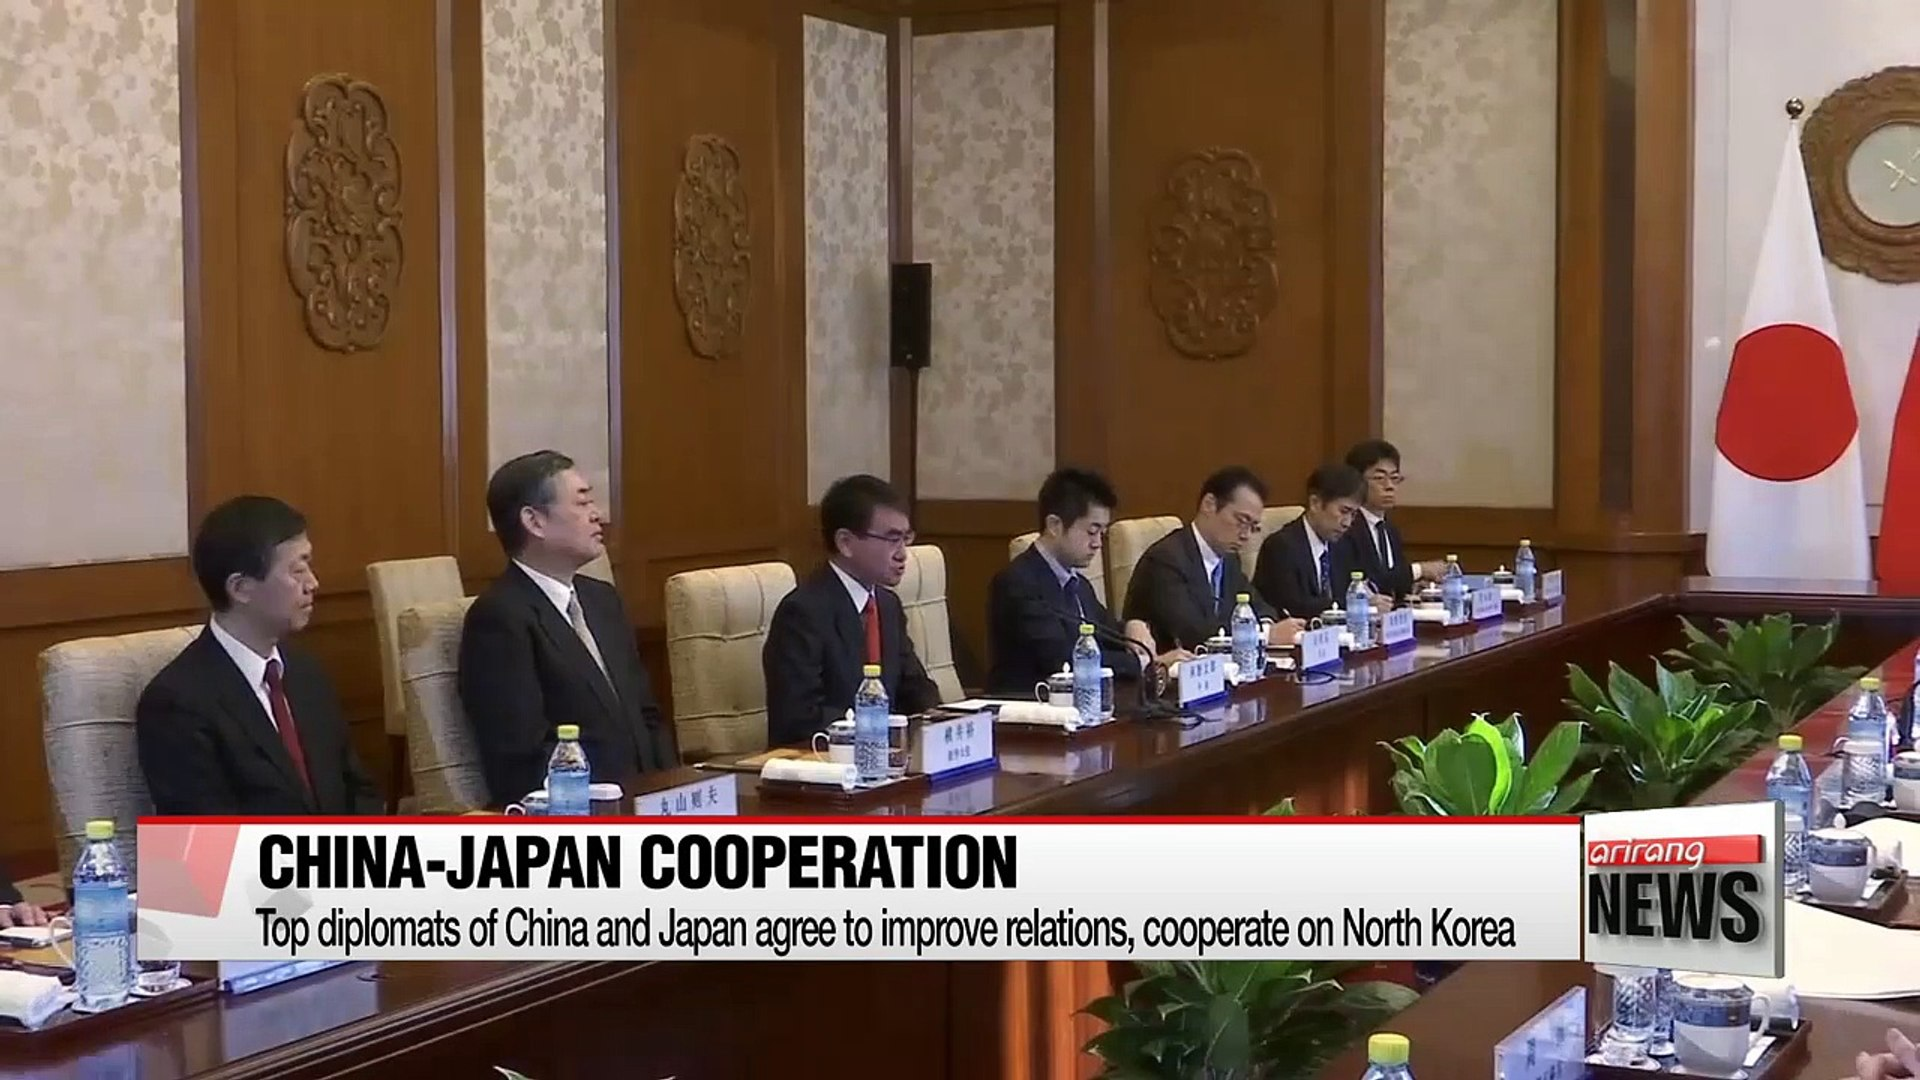 Top diplomats of China and Japan agree to improve relations, cooperate on North Korea